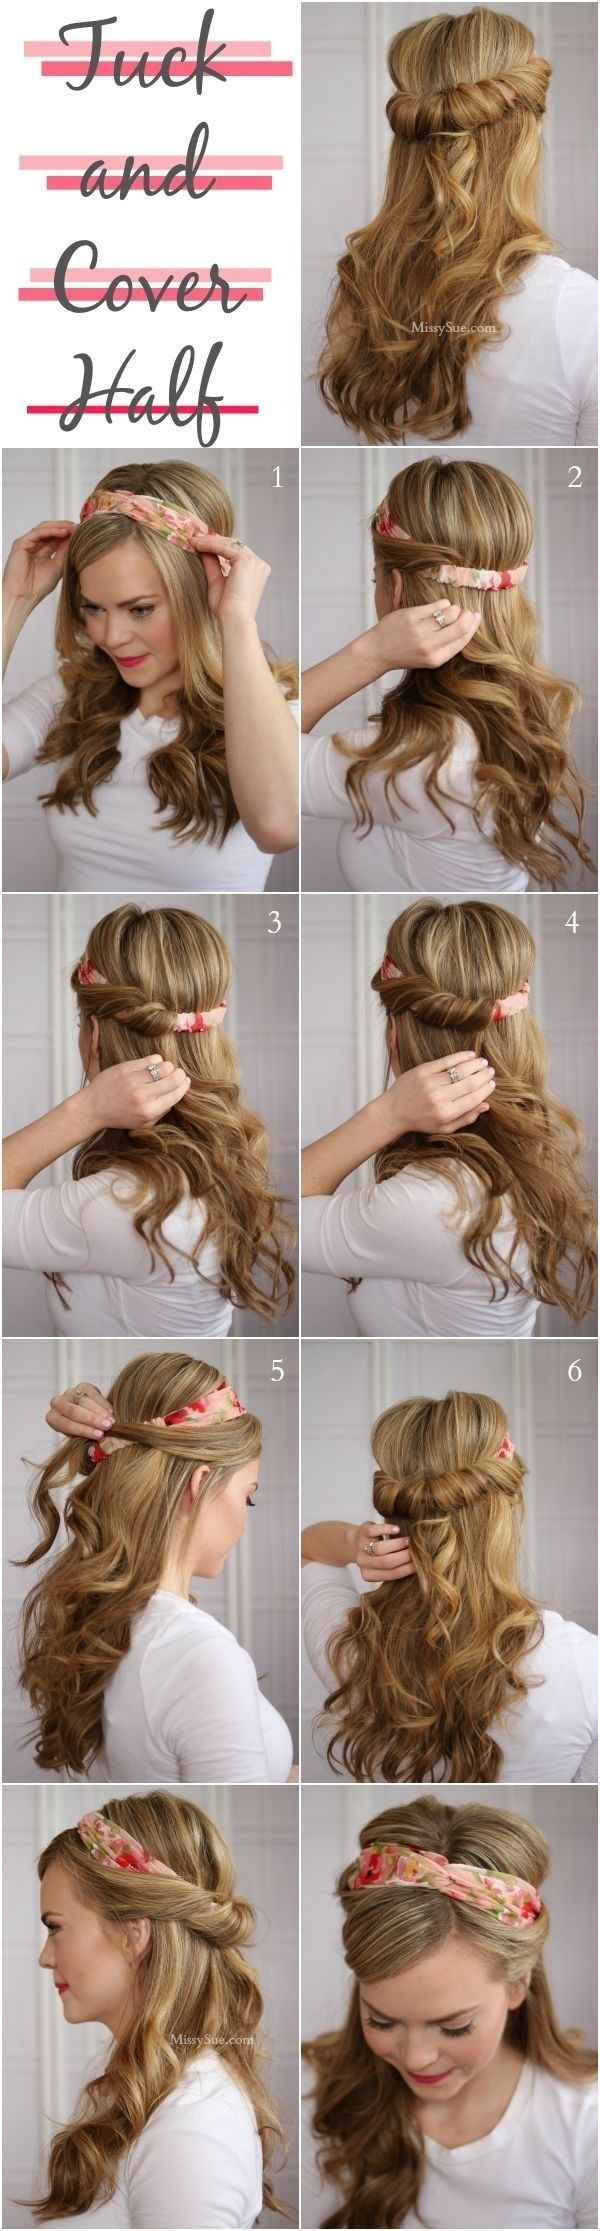 Best hair styling hacks for lazy girls girly stuff pinterest